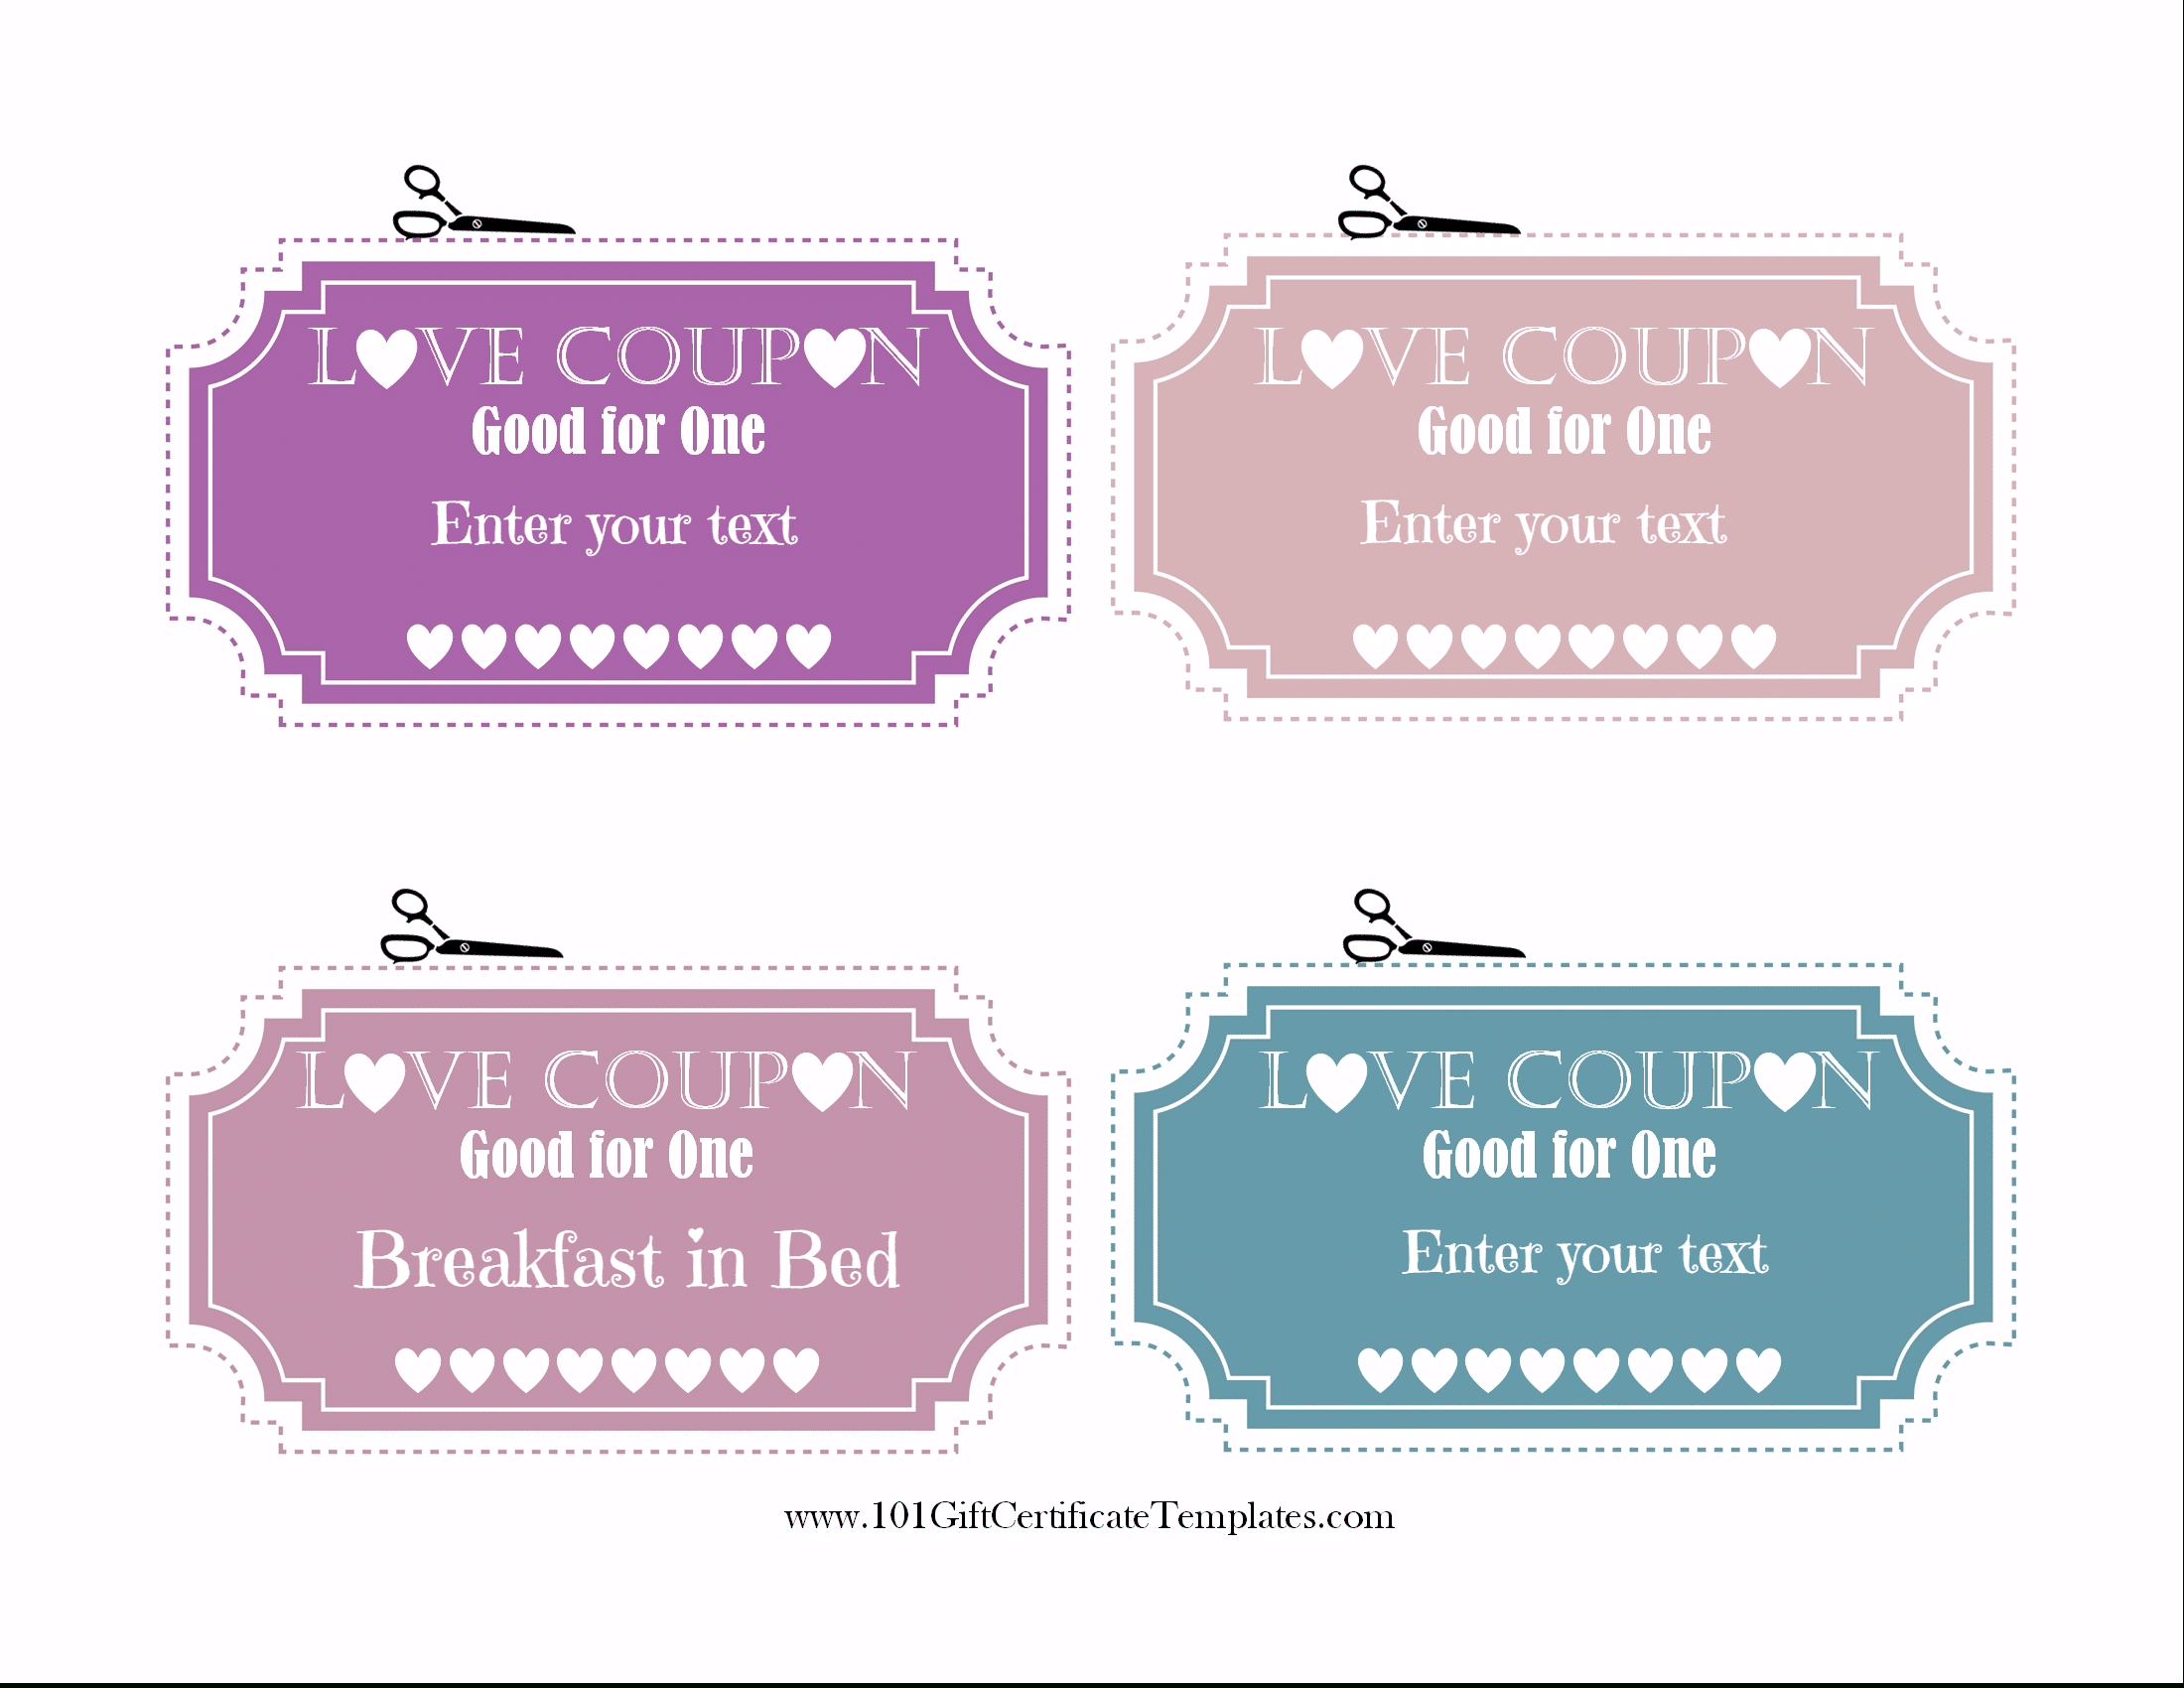 Free Editable Love Coupons For Him Or Her - Free Printable Love Certificates For Him